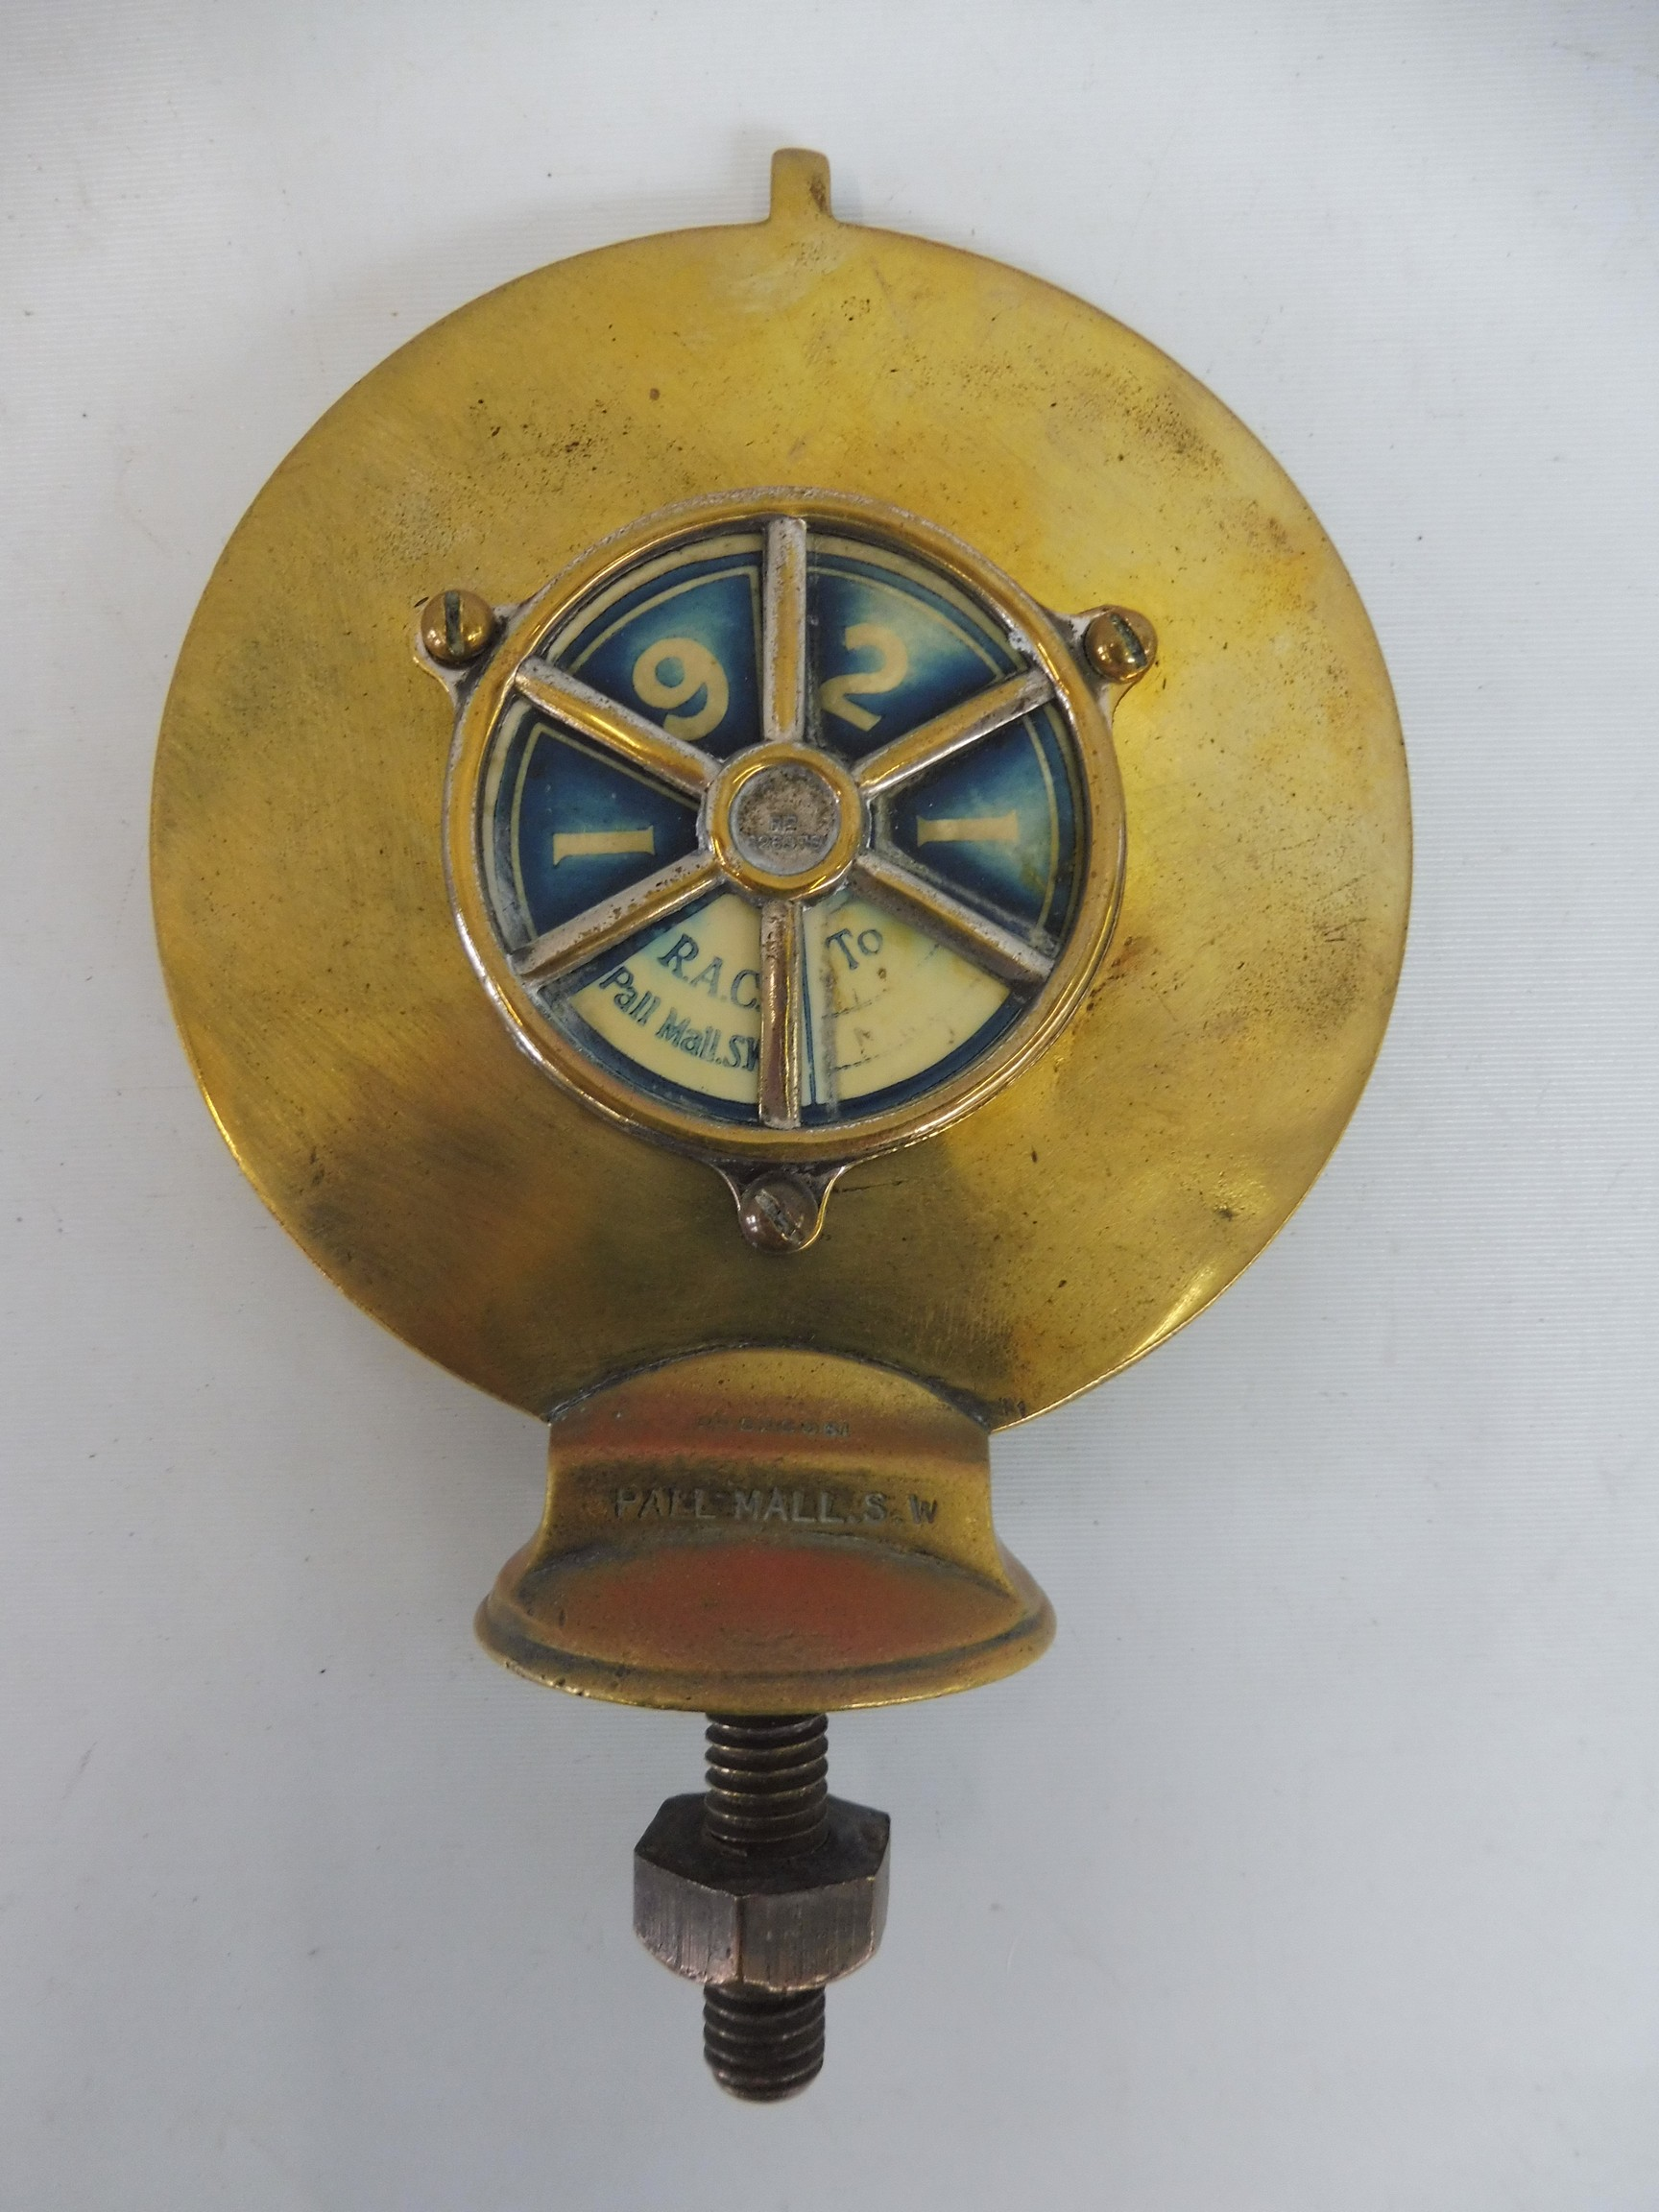 A Royal Automobile Club Associate car badge, polished brass with excellent enamel union jack centre, - Image 2 of 2